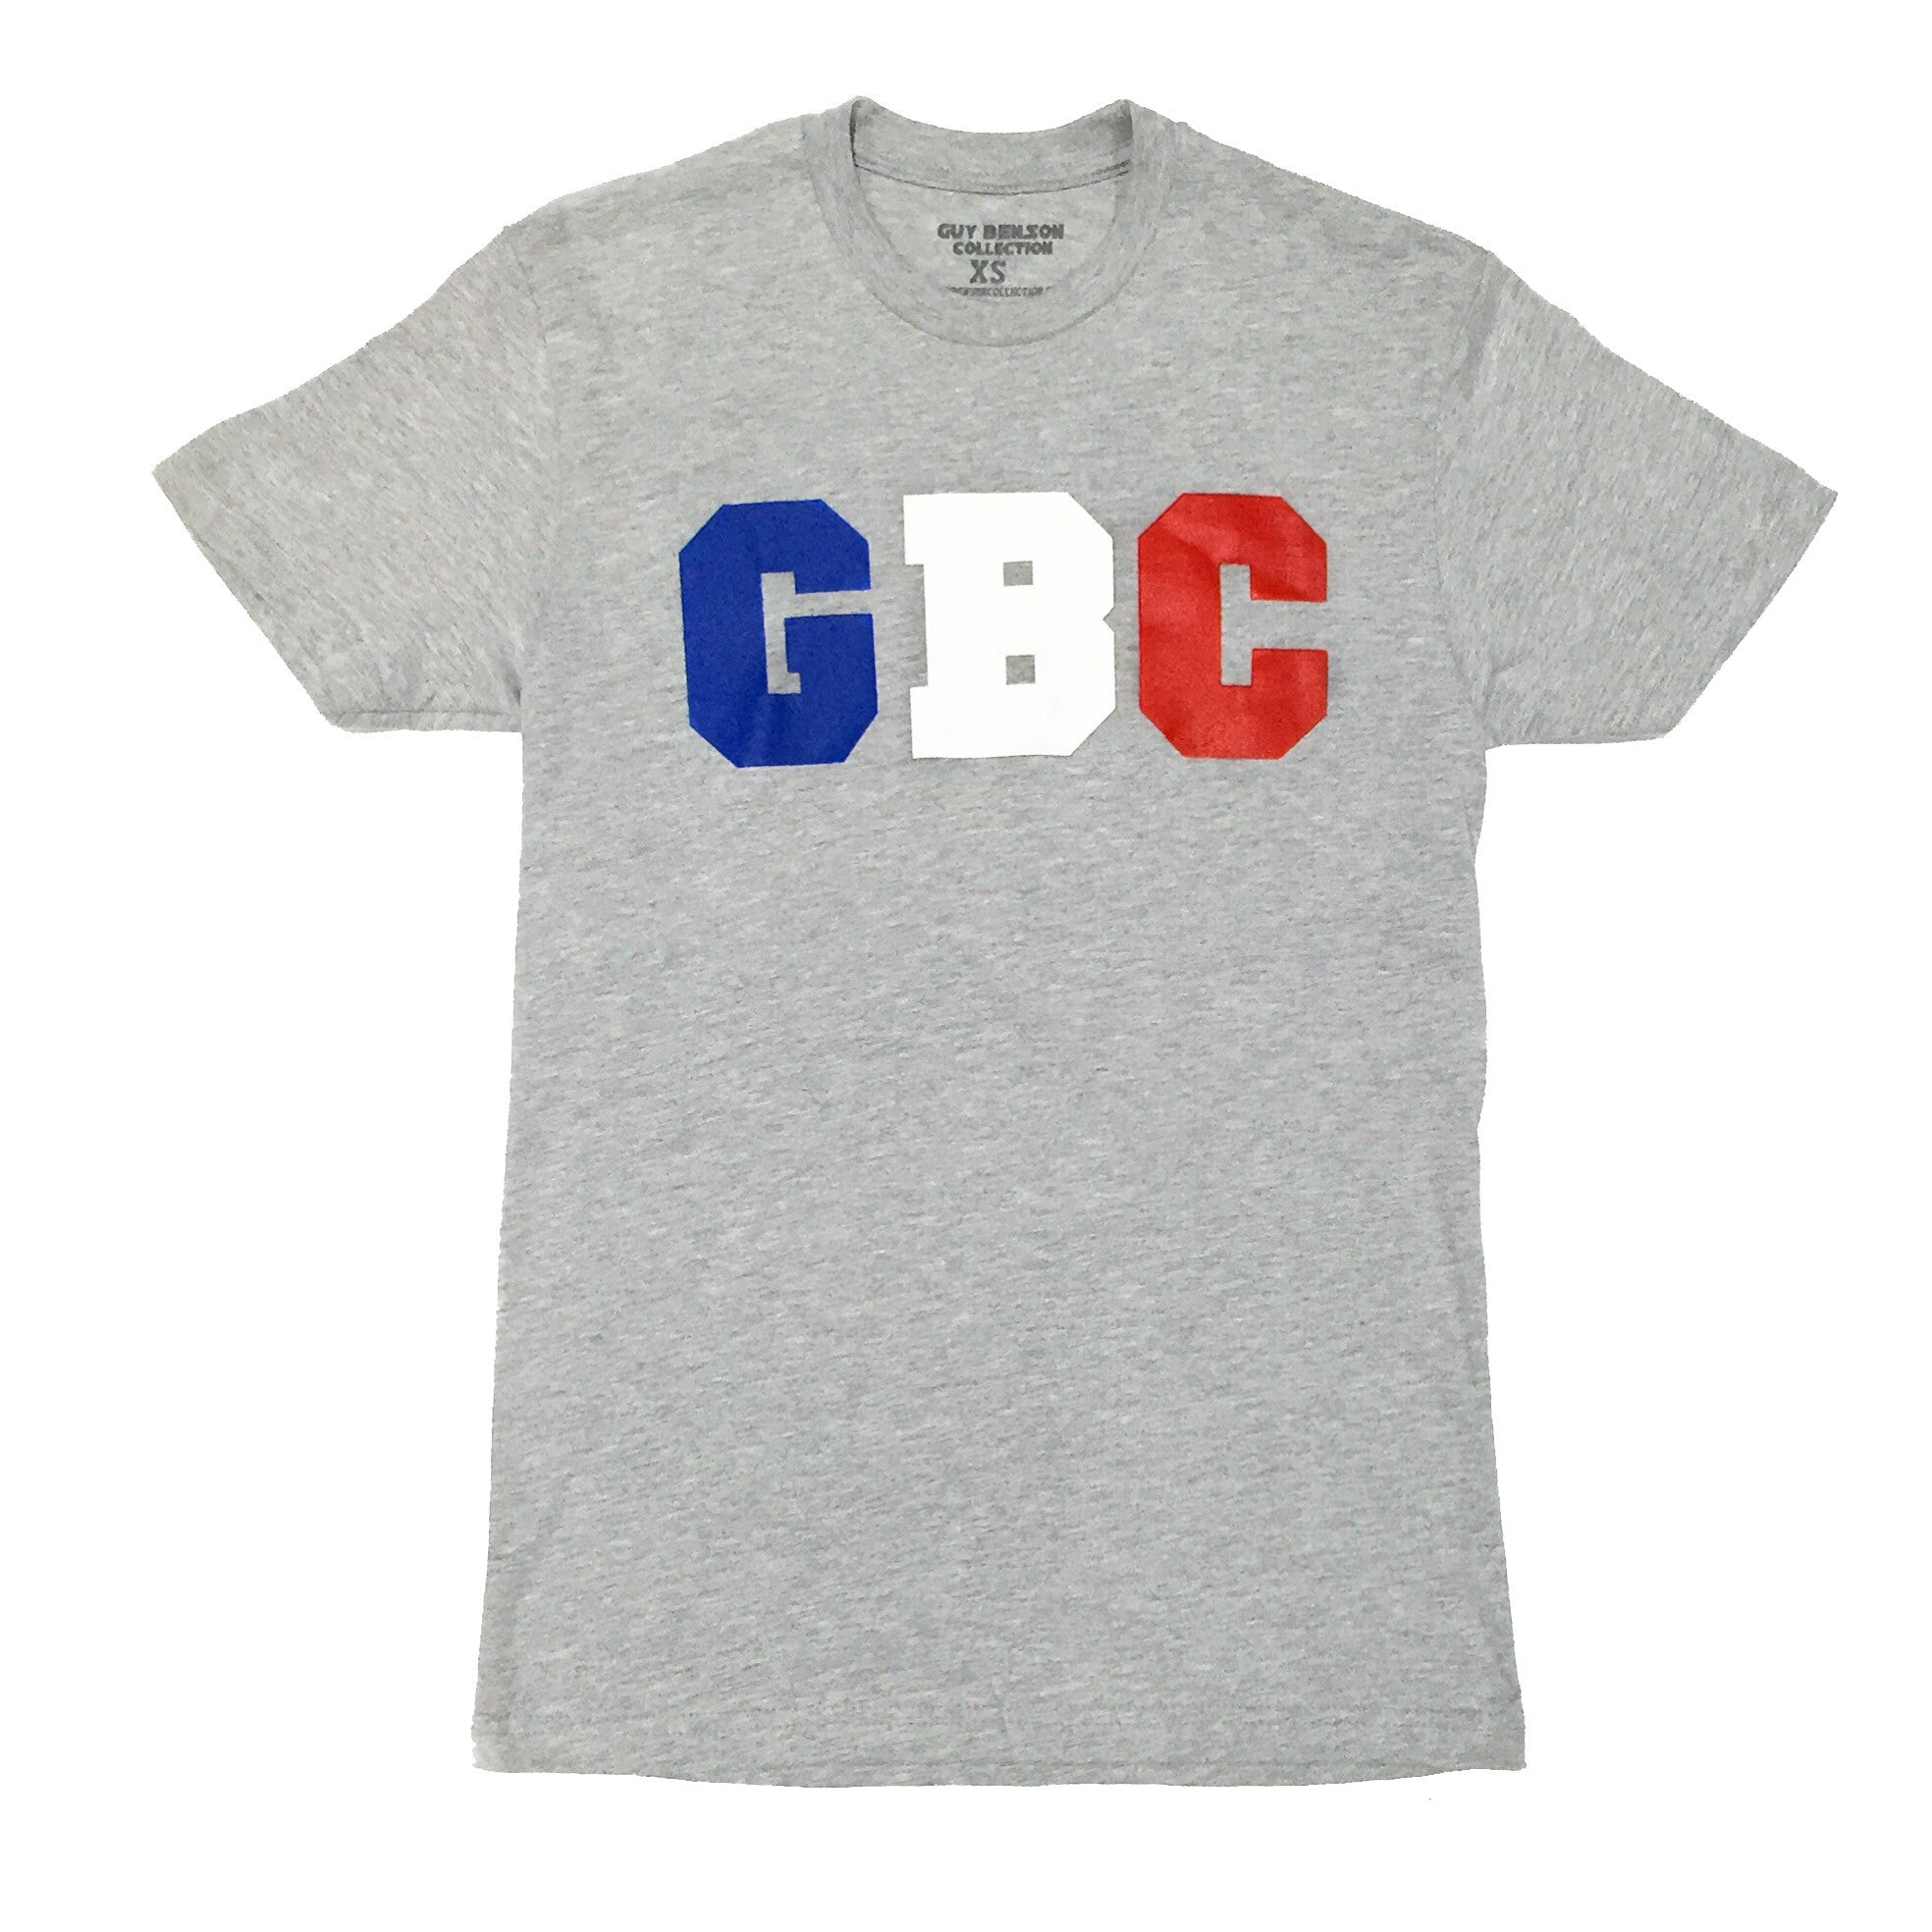 "Guy Benson Collection ""GBC"" logo tee - Grey/BlueWhite/Red"